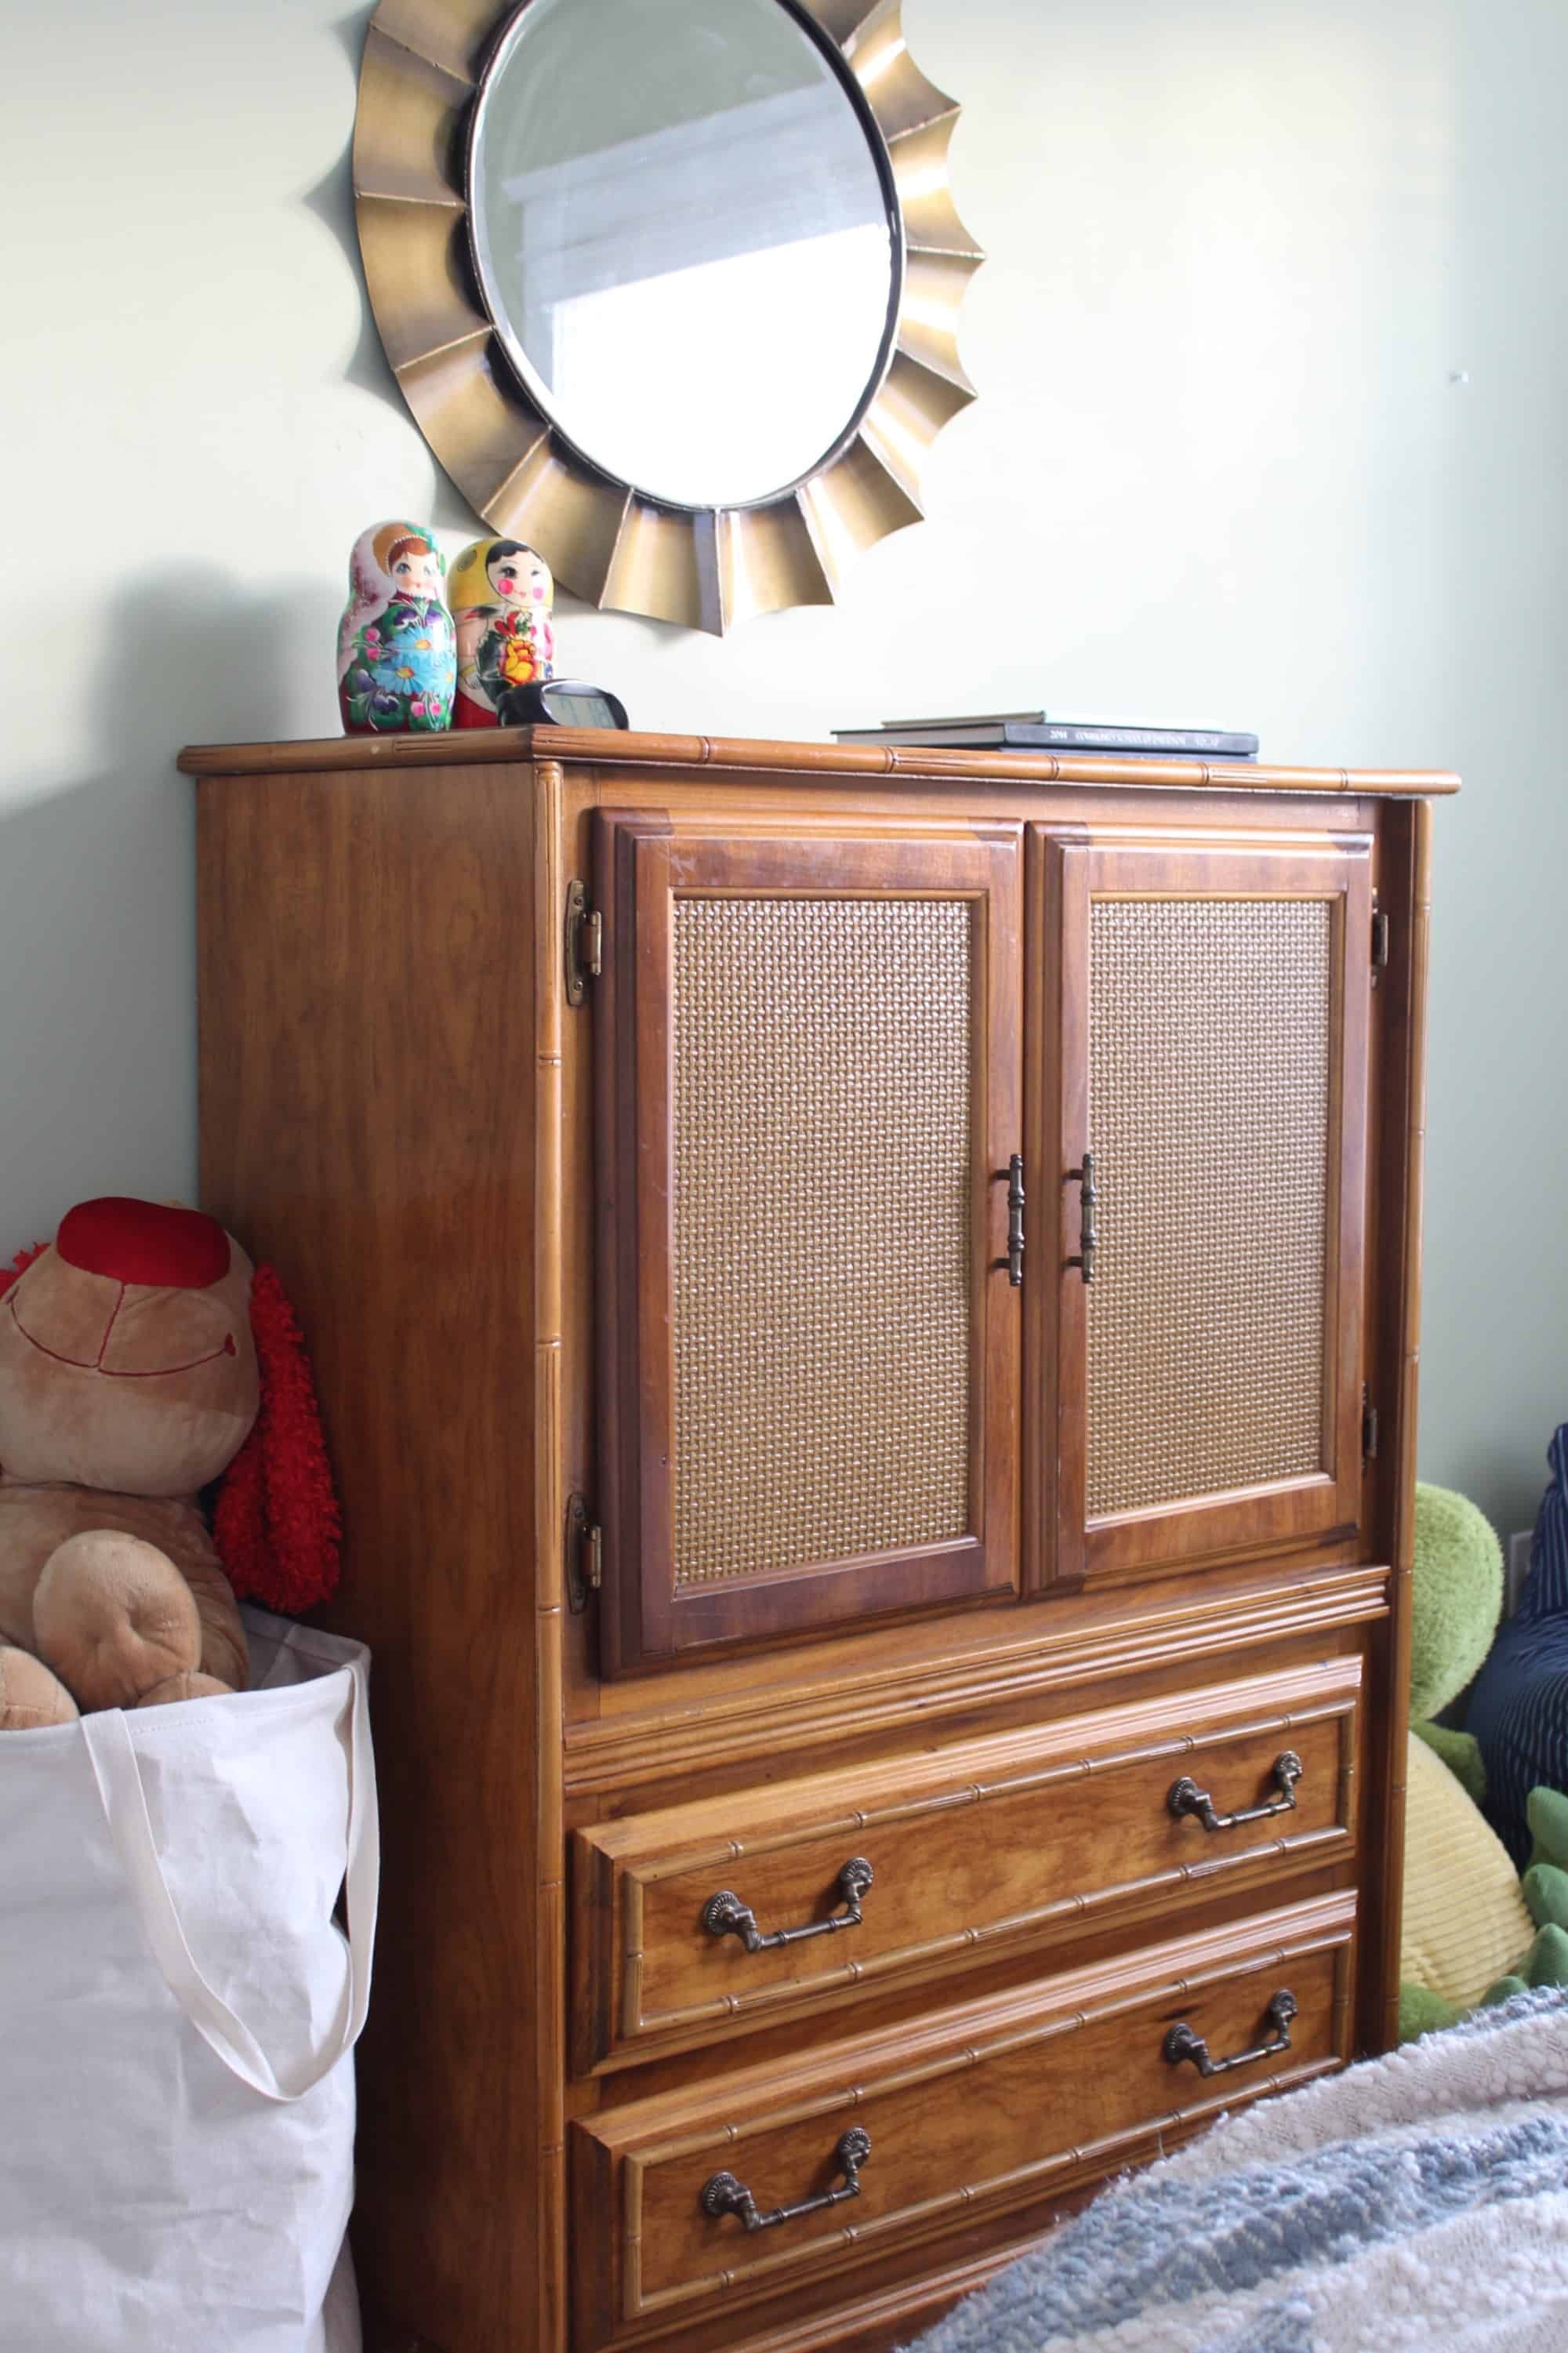 Big Boy Room: Small Change, Big Impact armoire